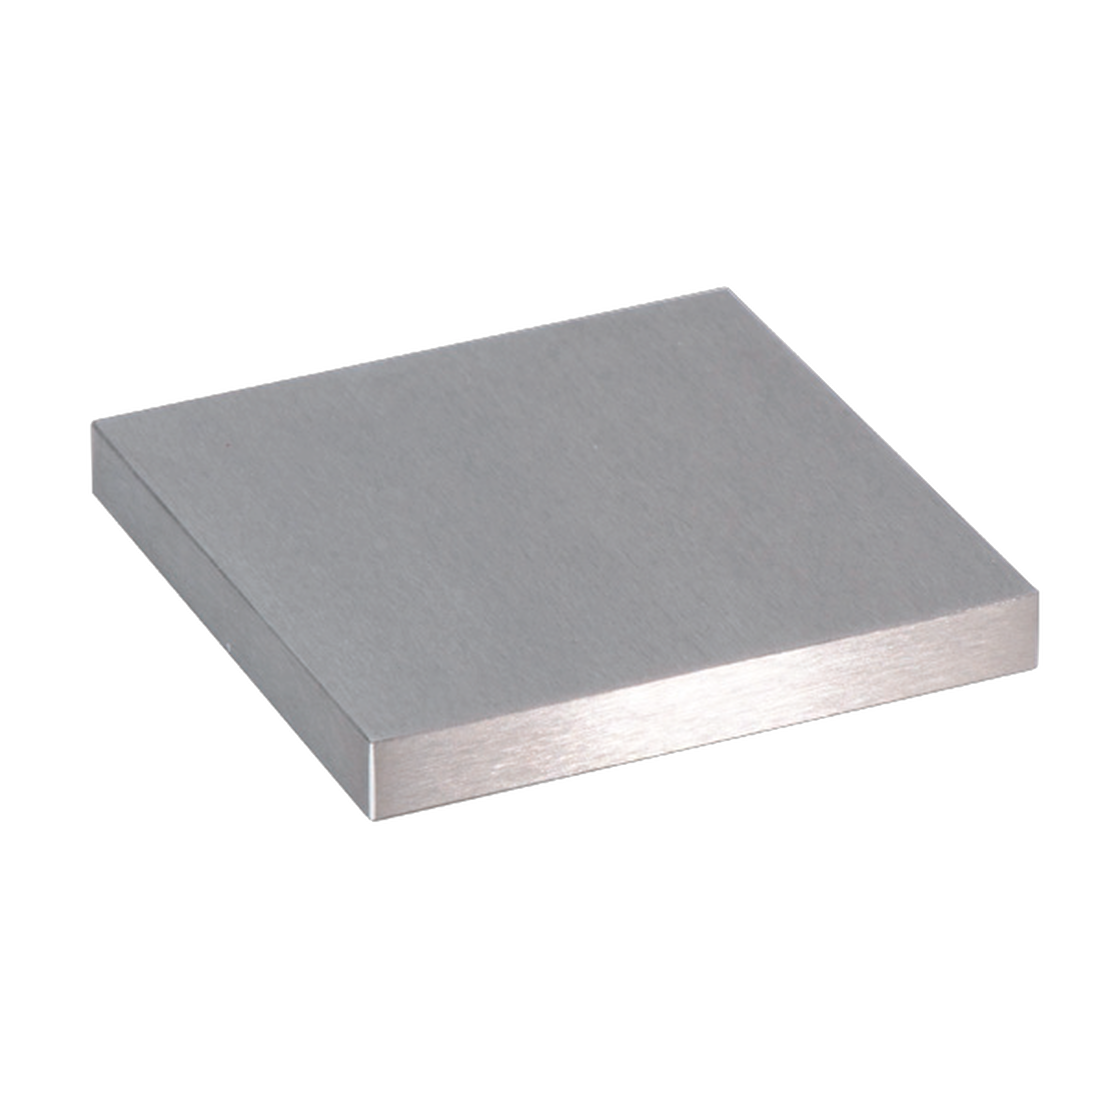 GLASS GLUING PLATE, [/] 81X81MM, CONTINUOUS EDGE